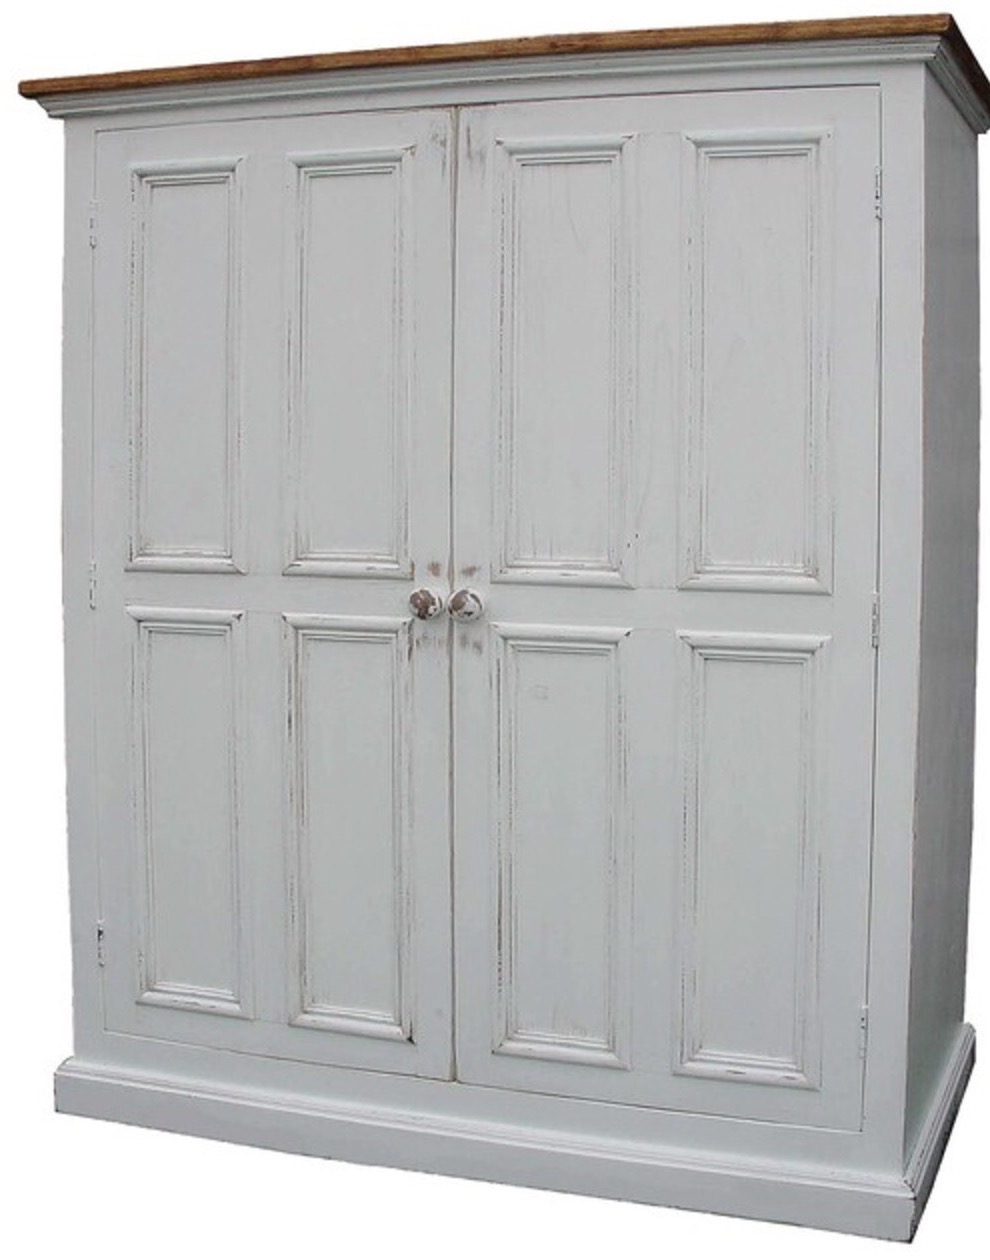 houzz linen press.JPG